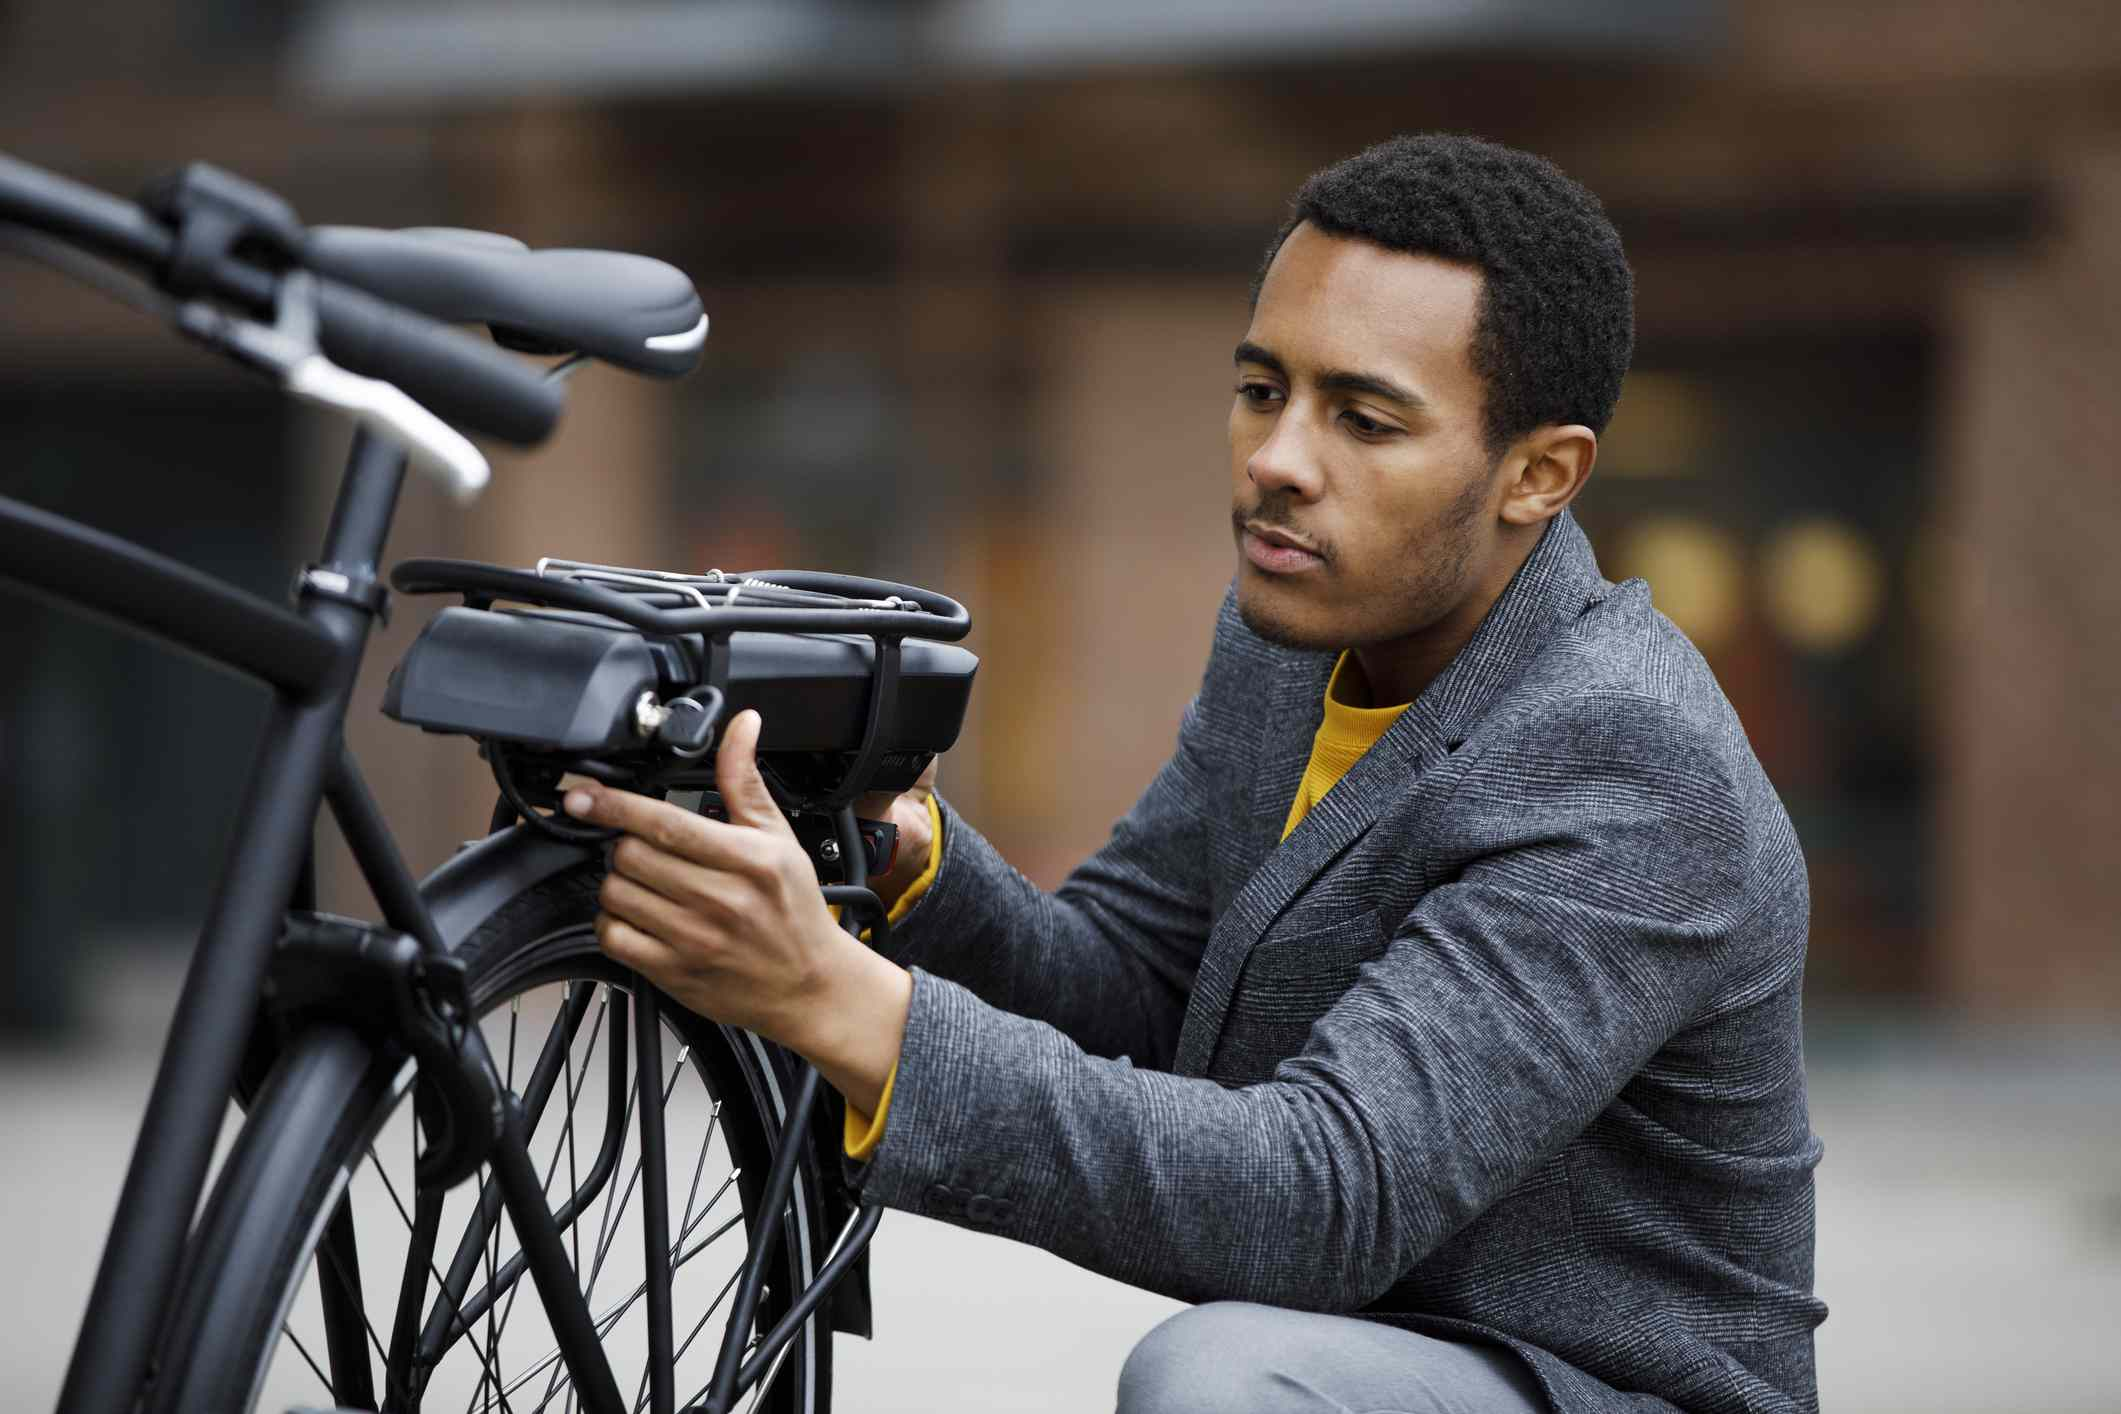 Young man changing battery pack on electric bicycle